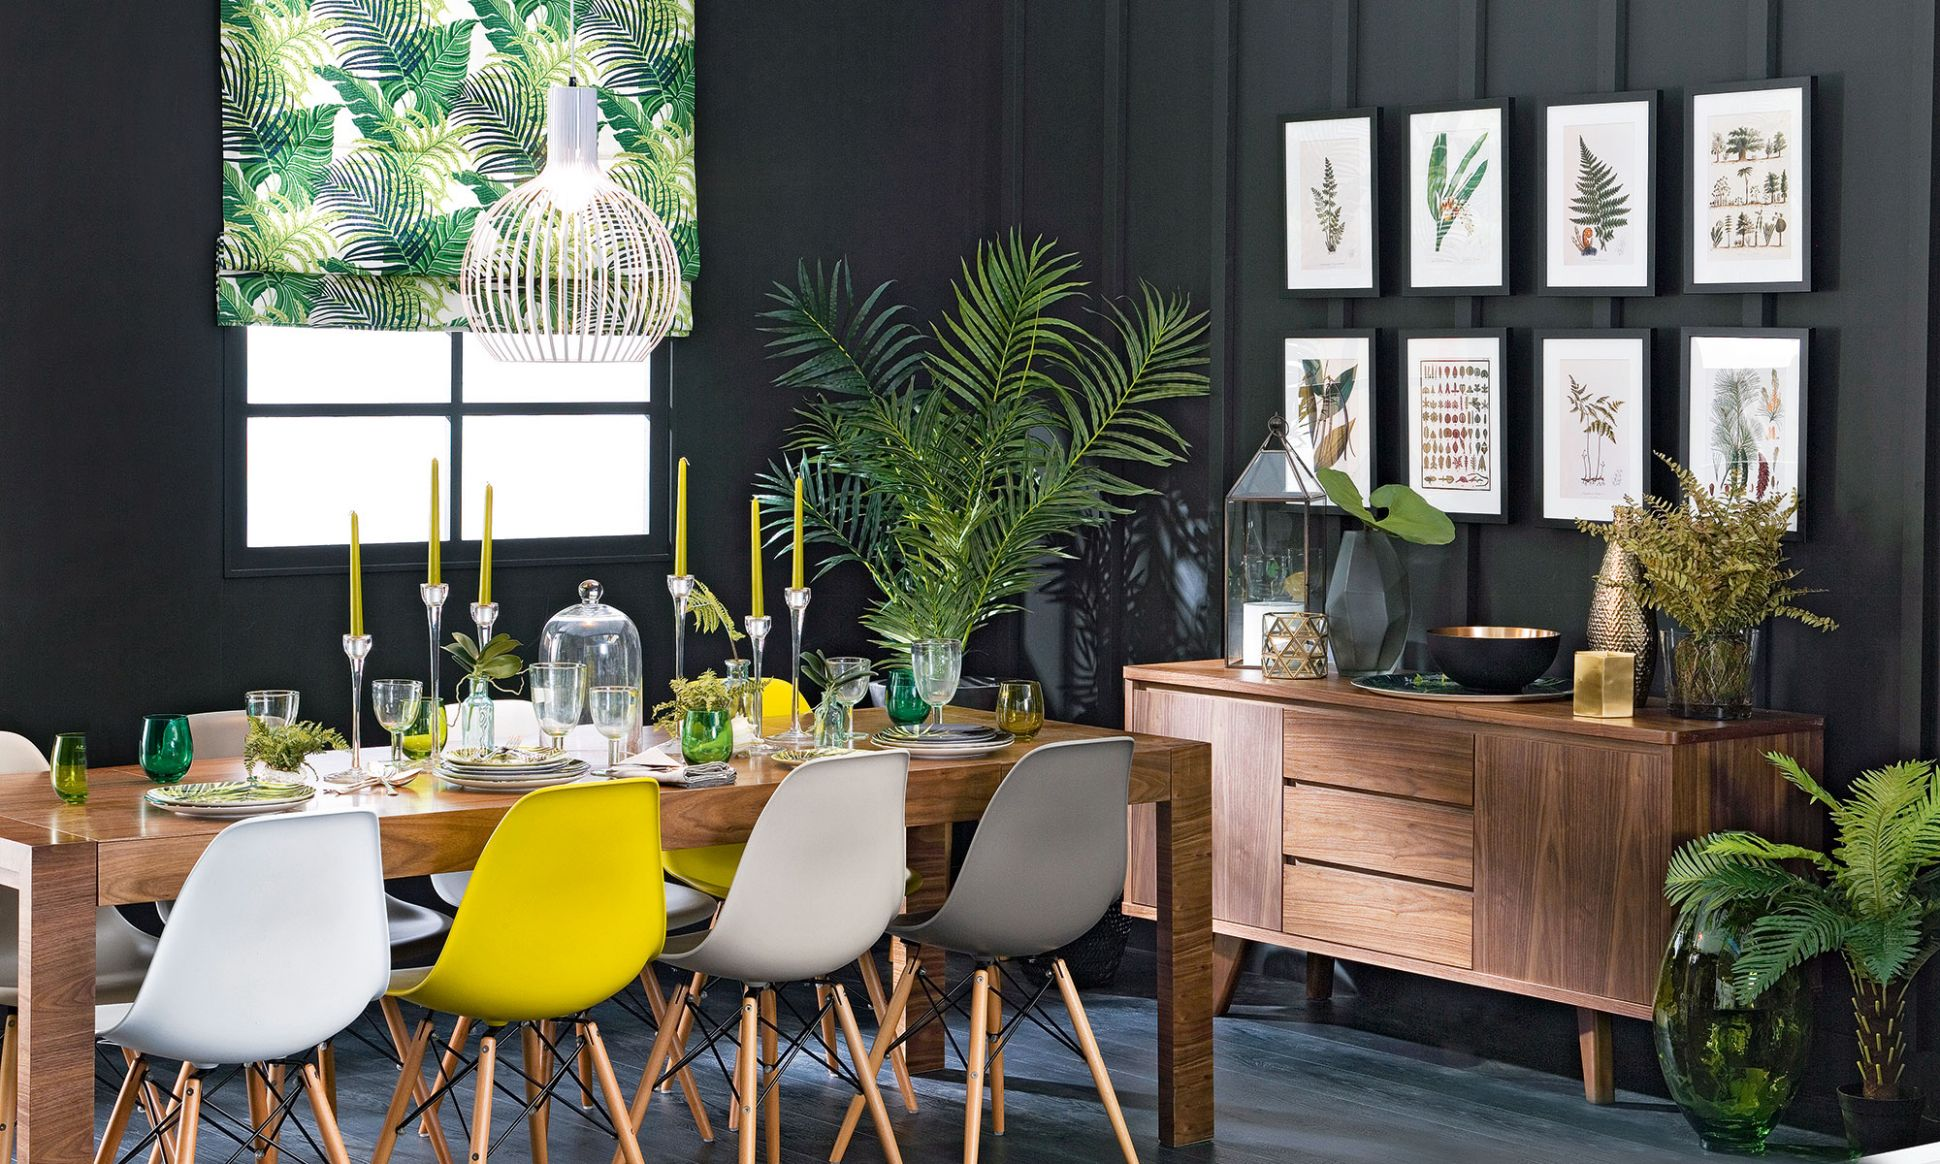 Budget dining room ideas – serve up a fresh look on a shoestring - dining room unit ideas